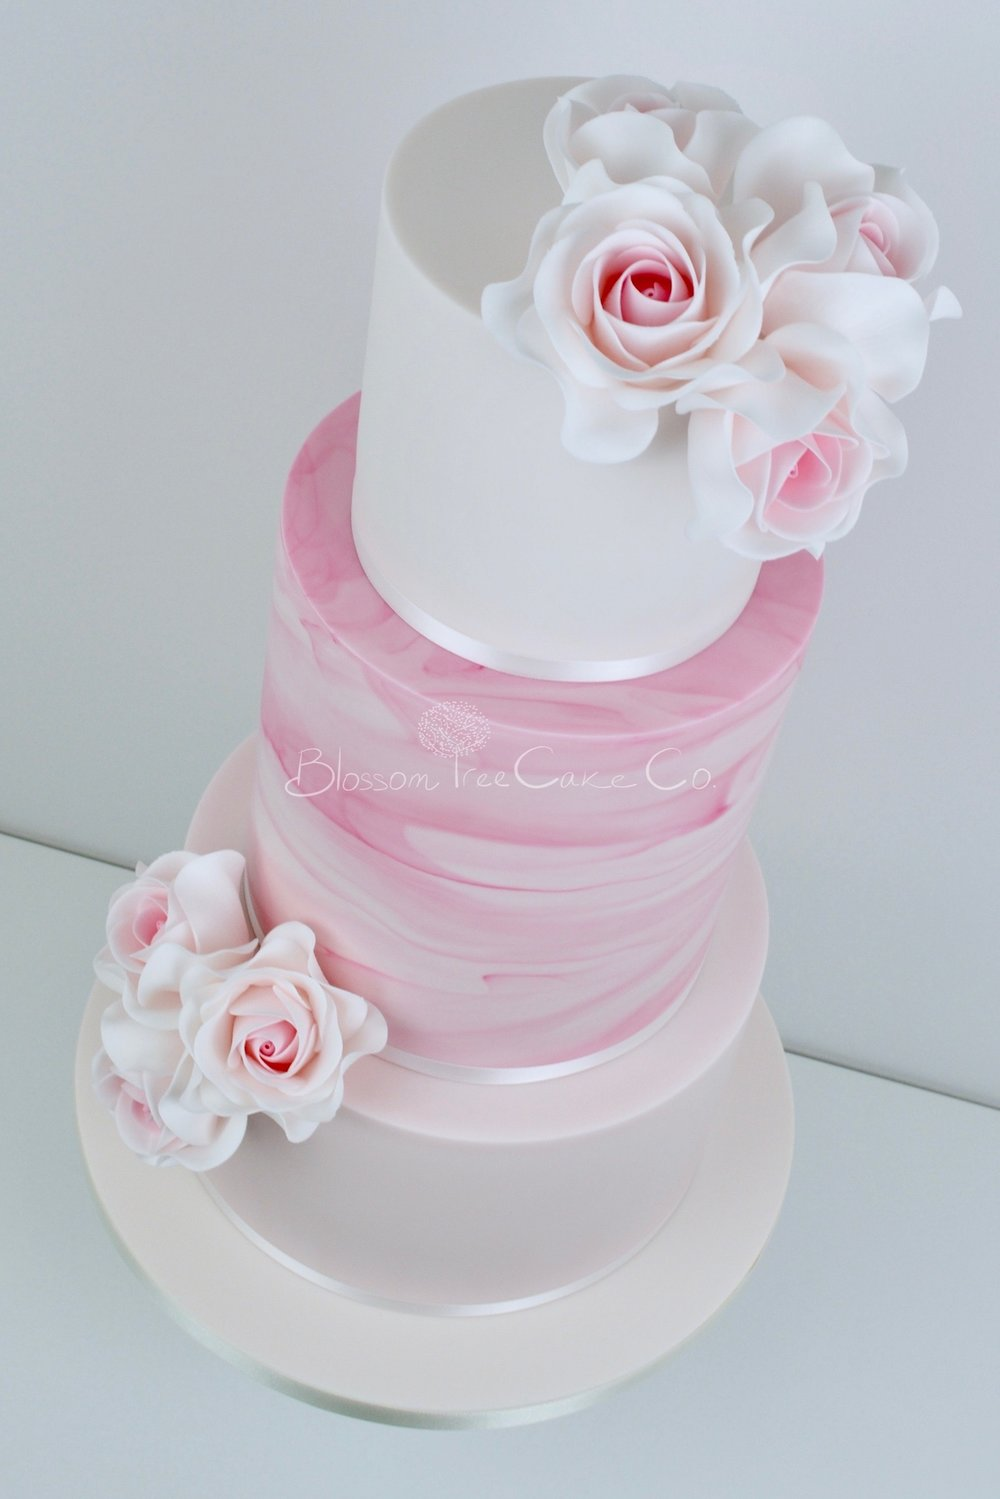 Pink Marble wedding cake by Blossom Tree Cake Company Harrogate North Yorkshire